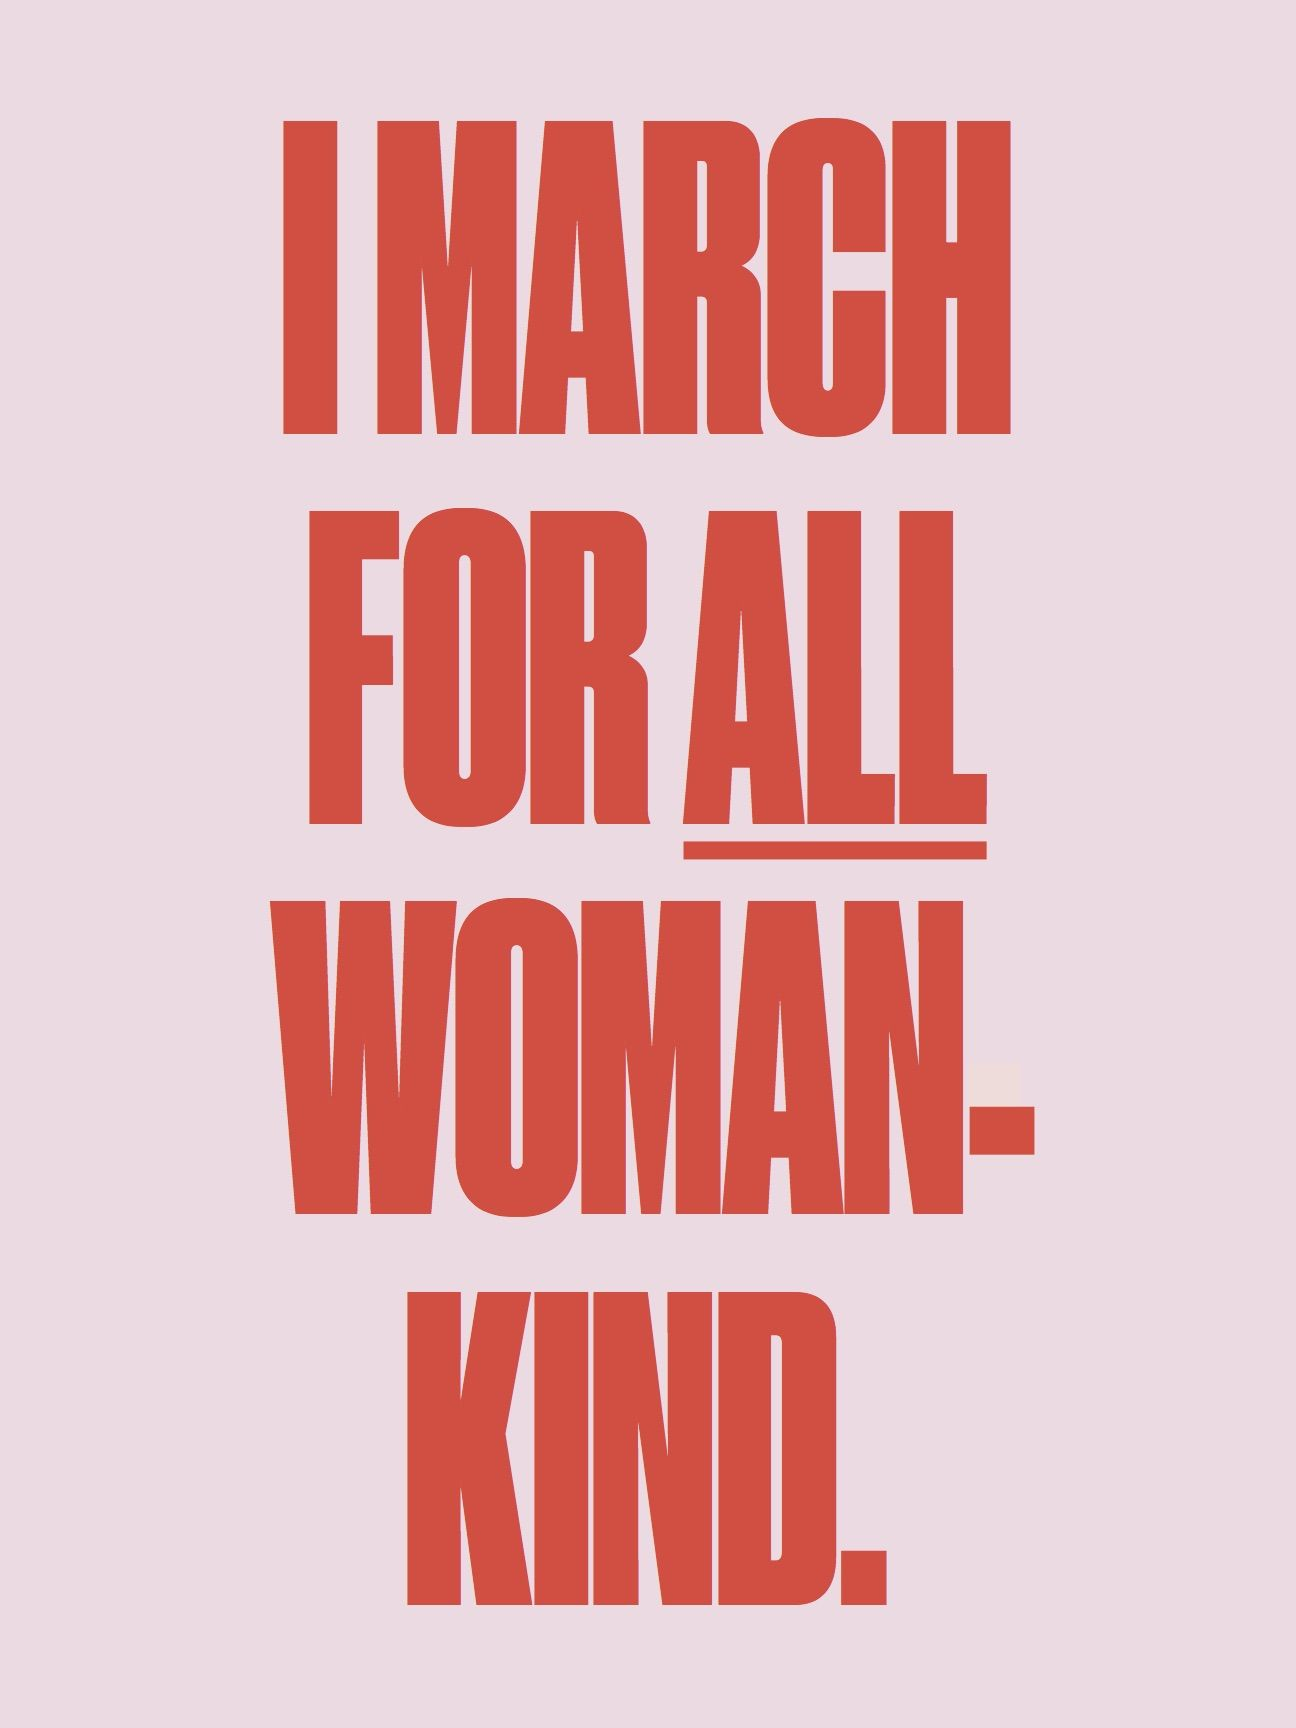 How Feminist Movements Co Opt Graphic Design To Express Themselves Protest Signs Protest Posters Protest Ideas